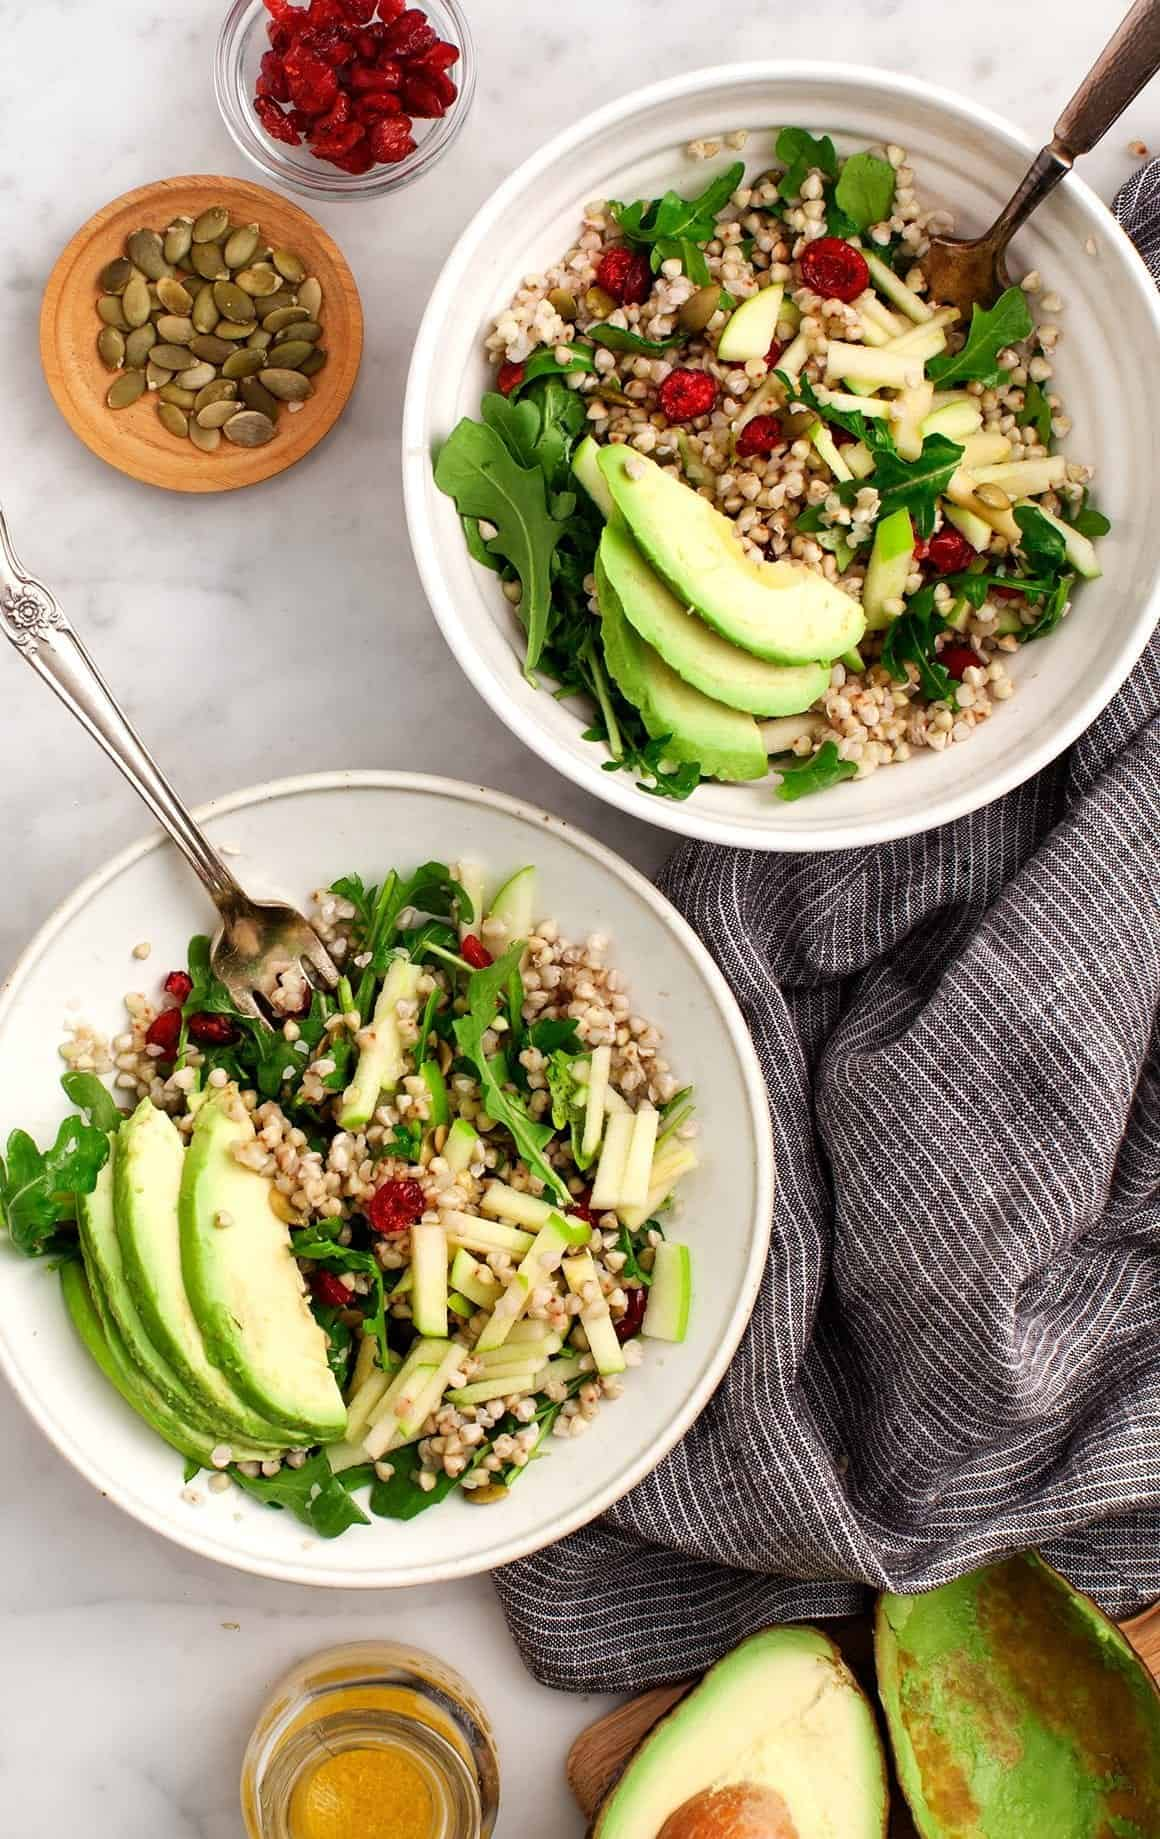 Buckwheat salad recipes